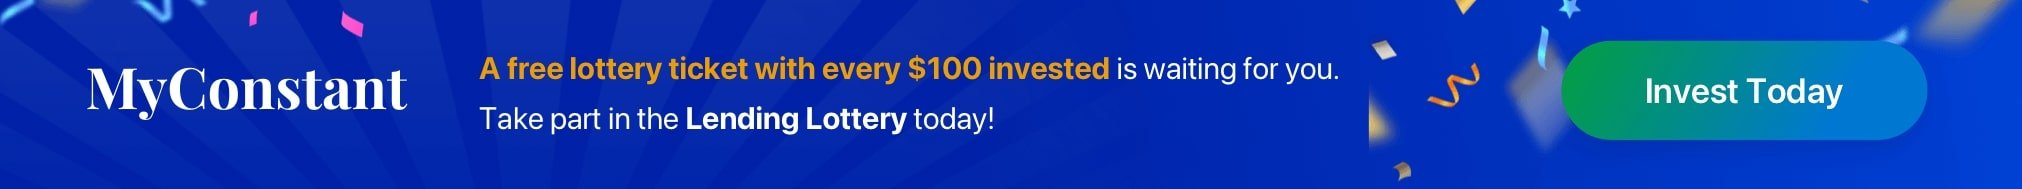 A free lottery ticket with every $100 invested